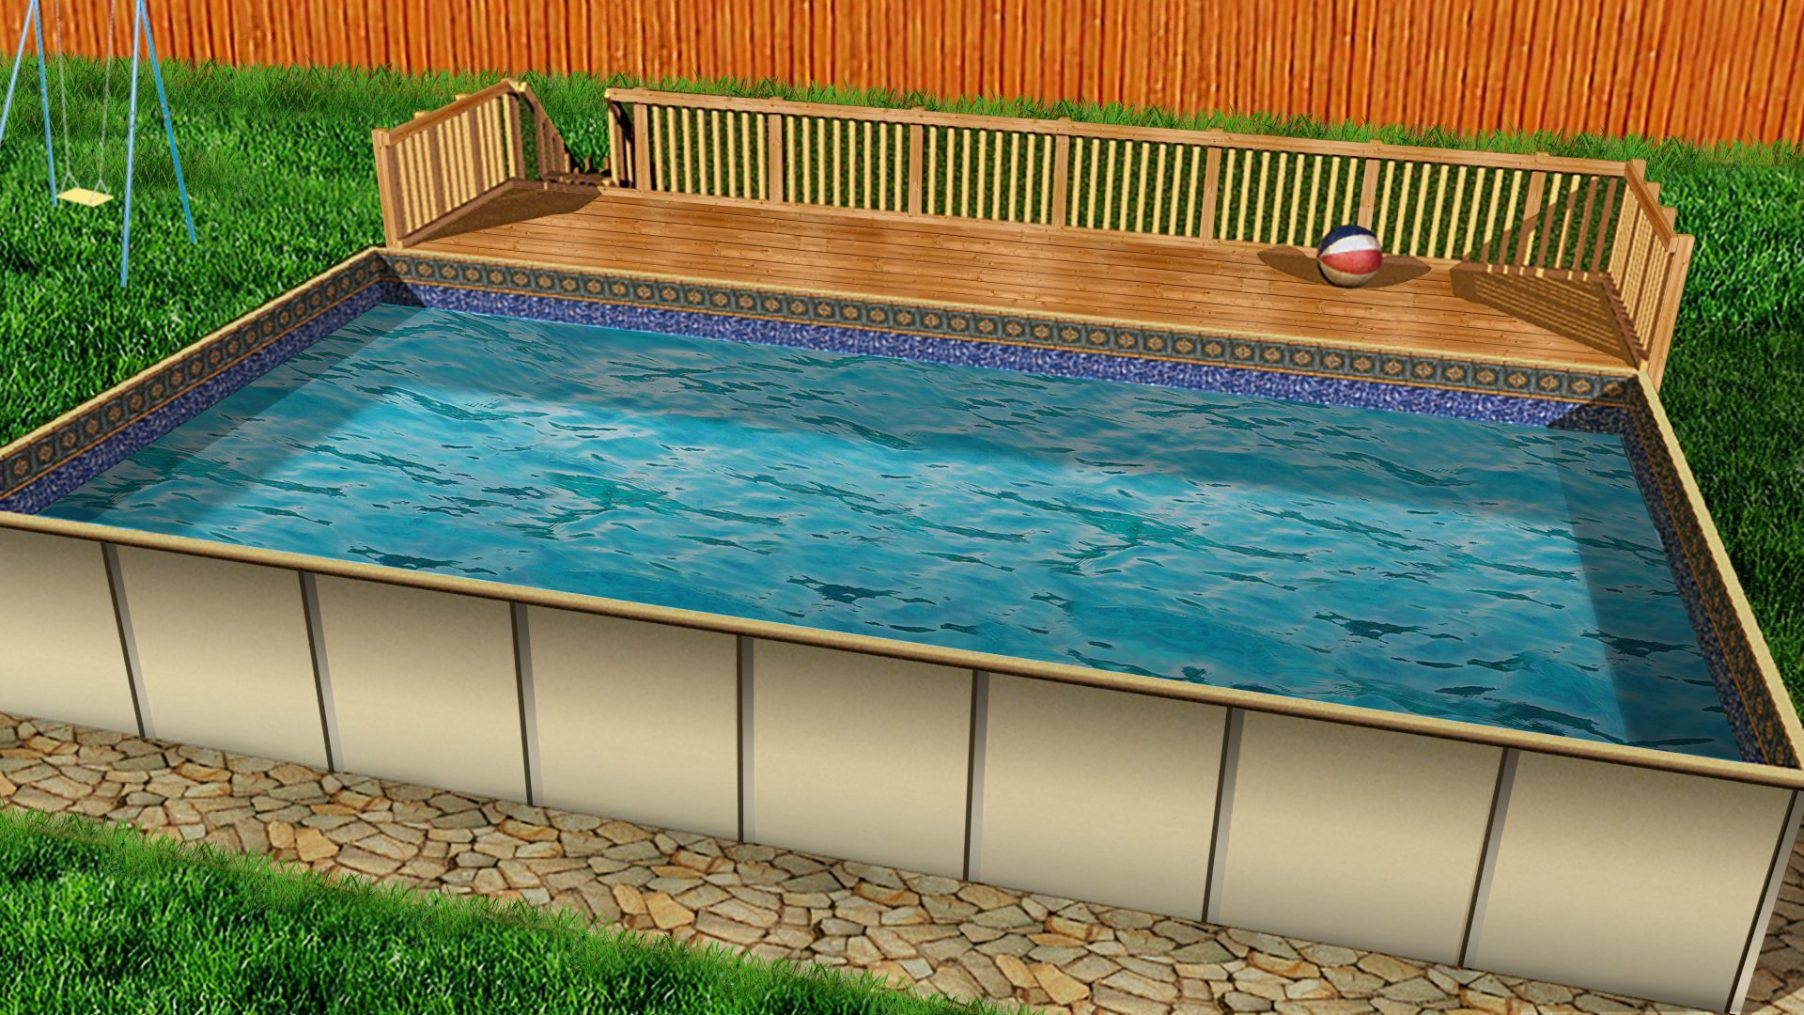 Swimming pool discountershercules modular above ground for Square above ground pool